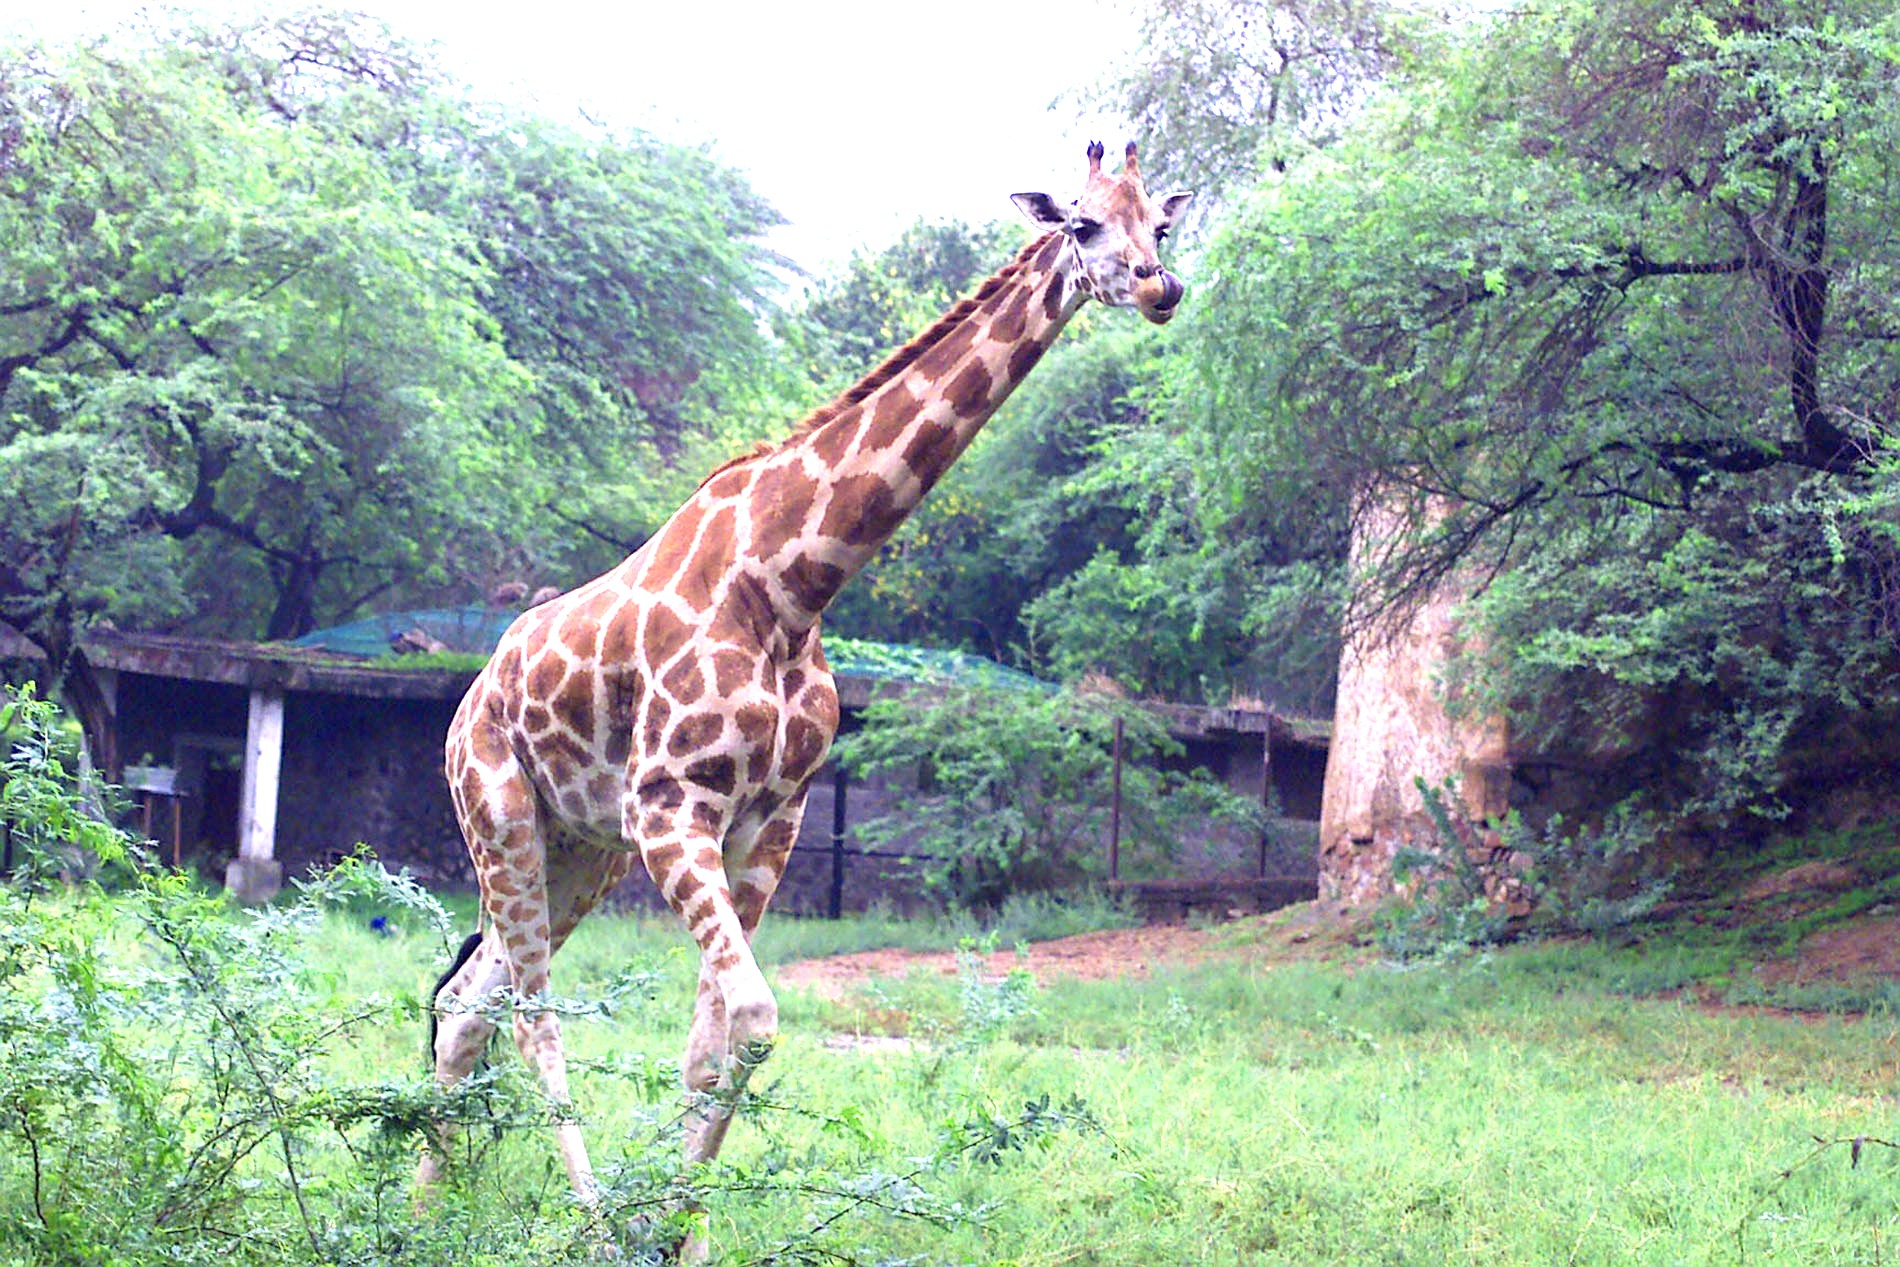 National Zoological Park Delhi, Giraffe At National Zoological Park Delhi | Manthan Diary